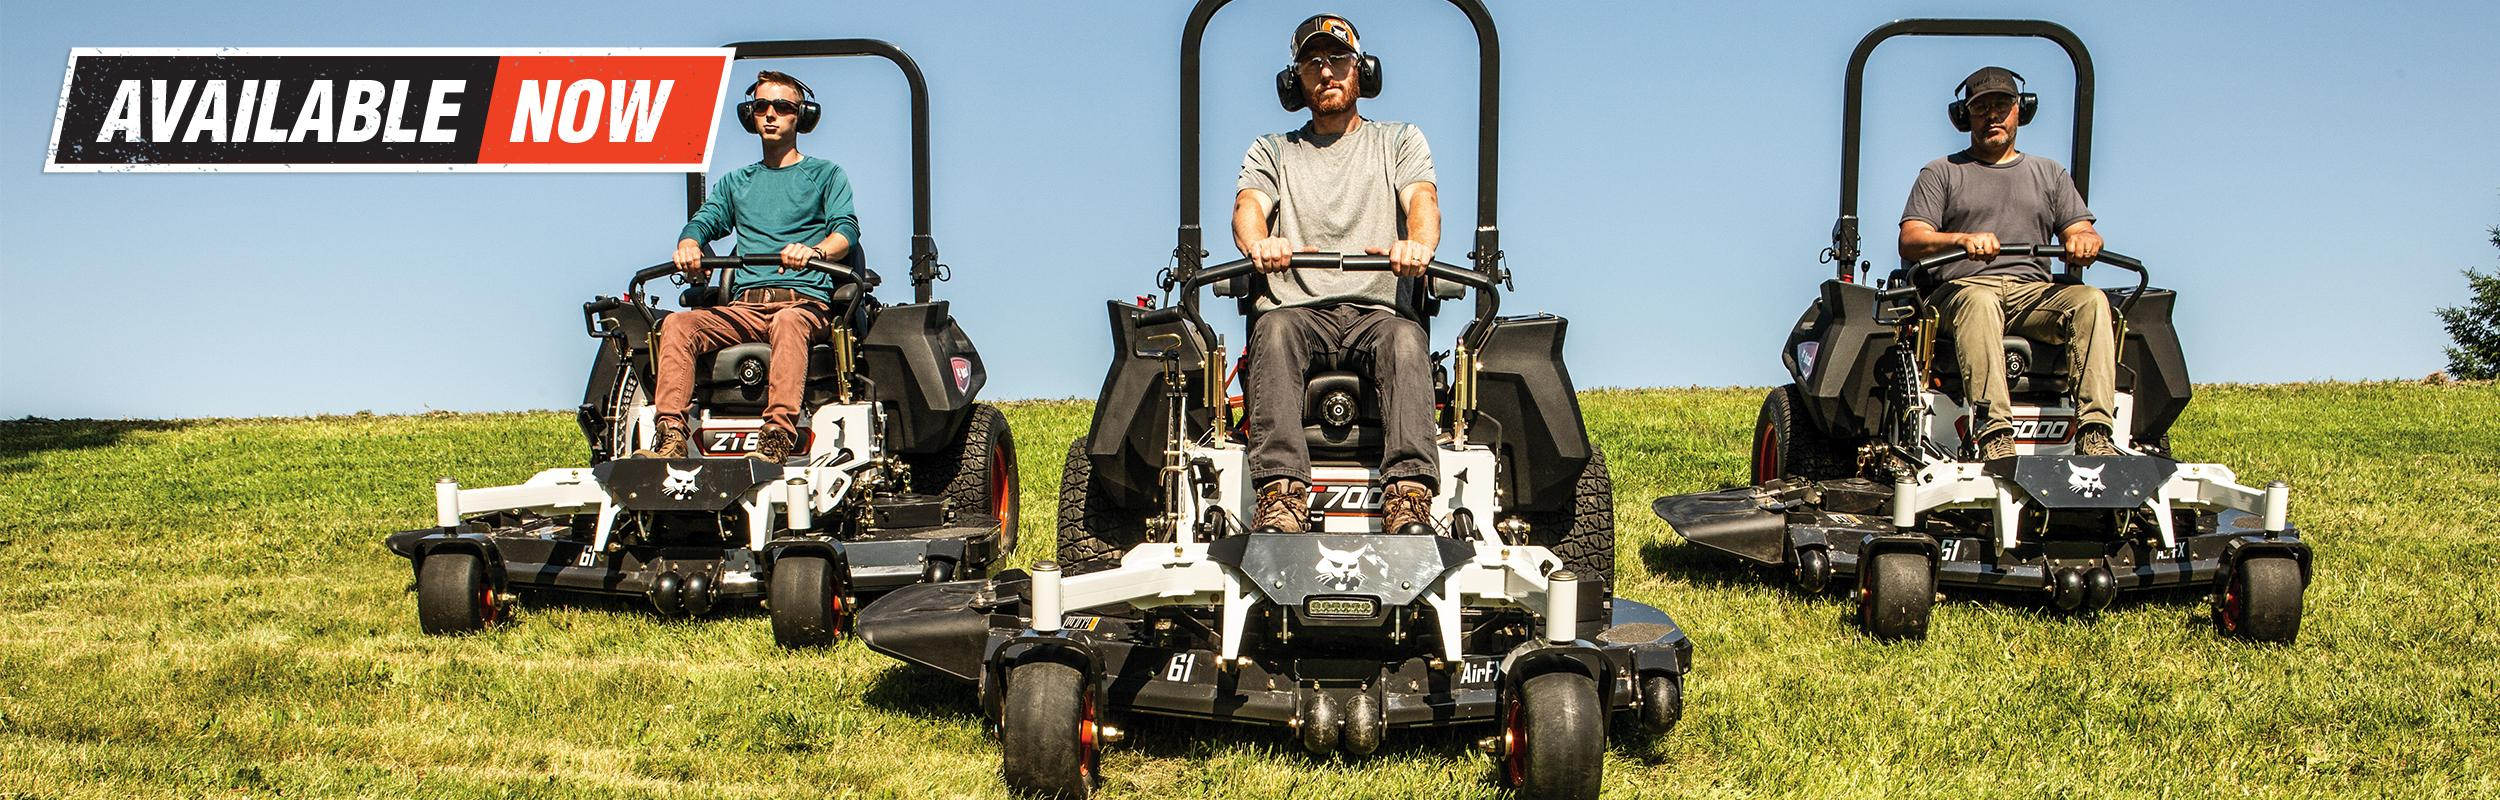 New Bobcat Mowers Now Available